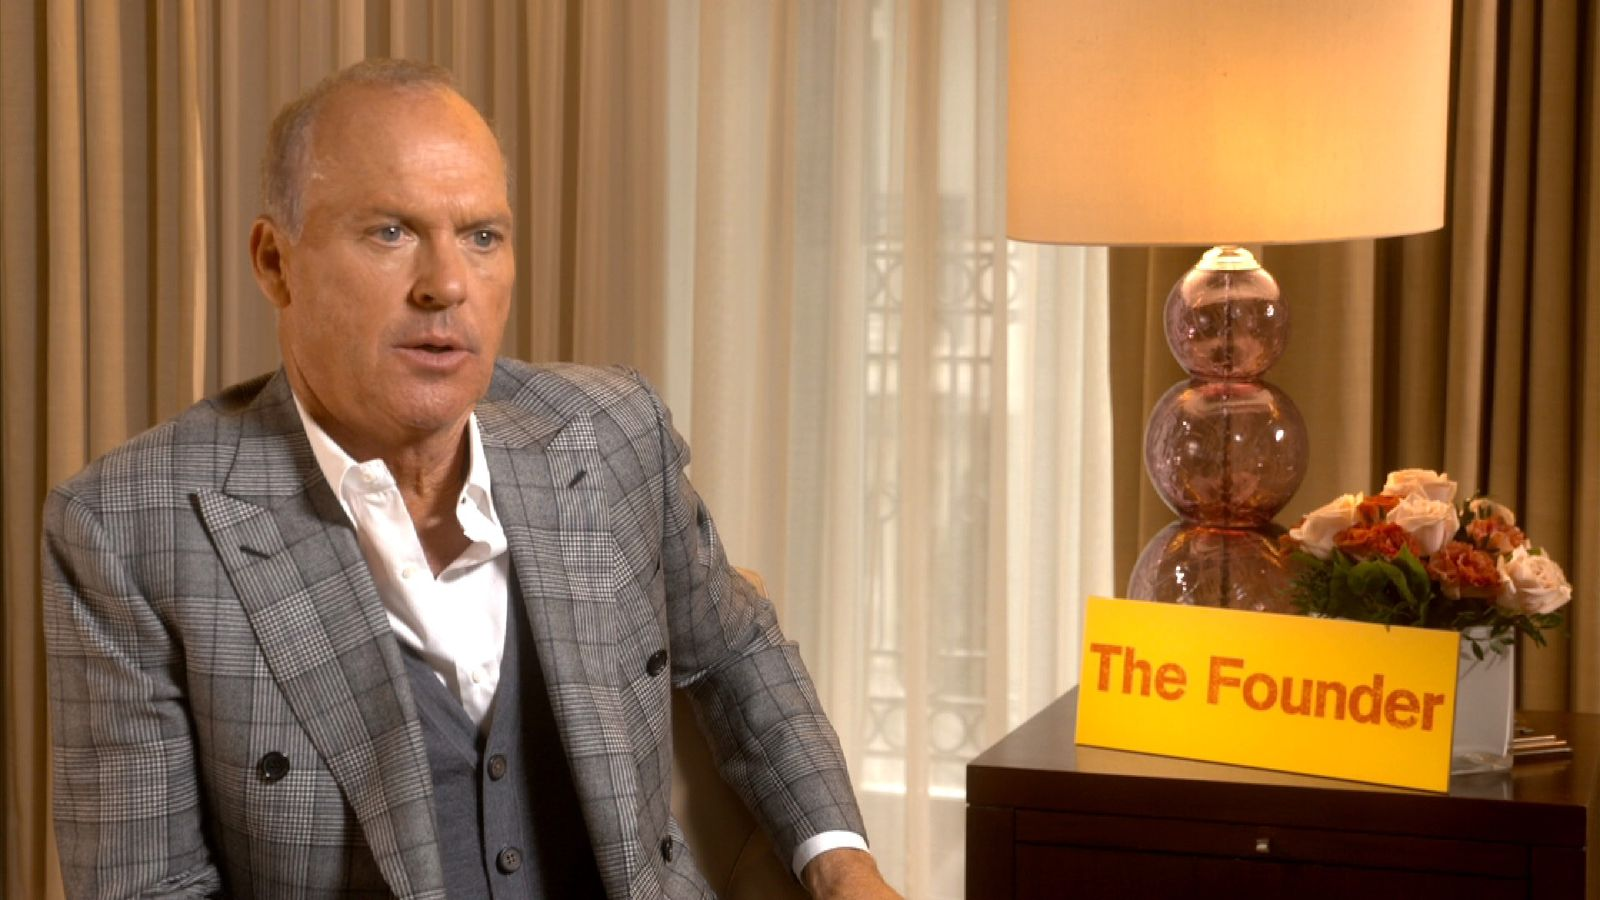 Michael Keaton stars in new McDonalds biopic The Founder